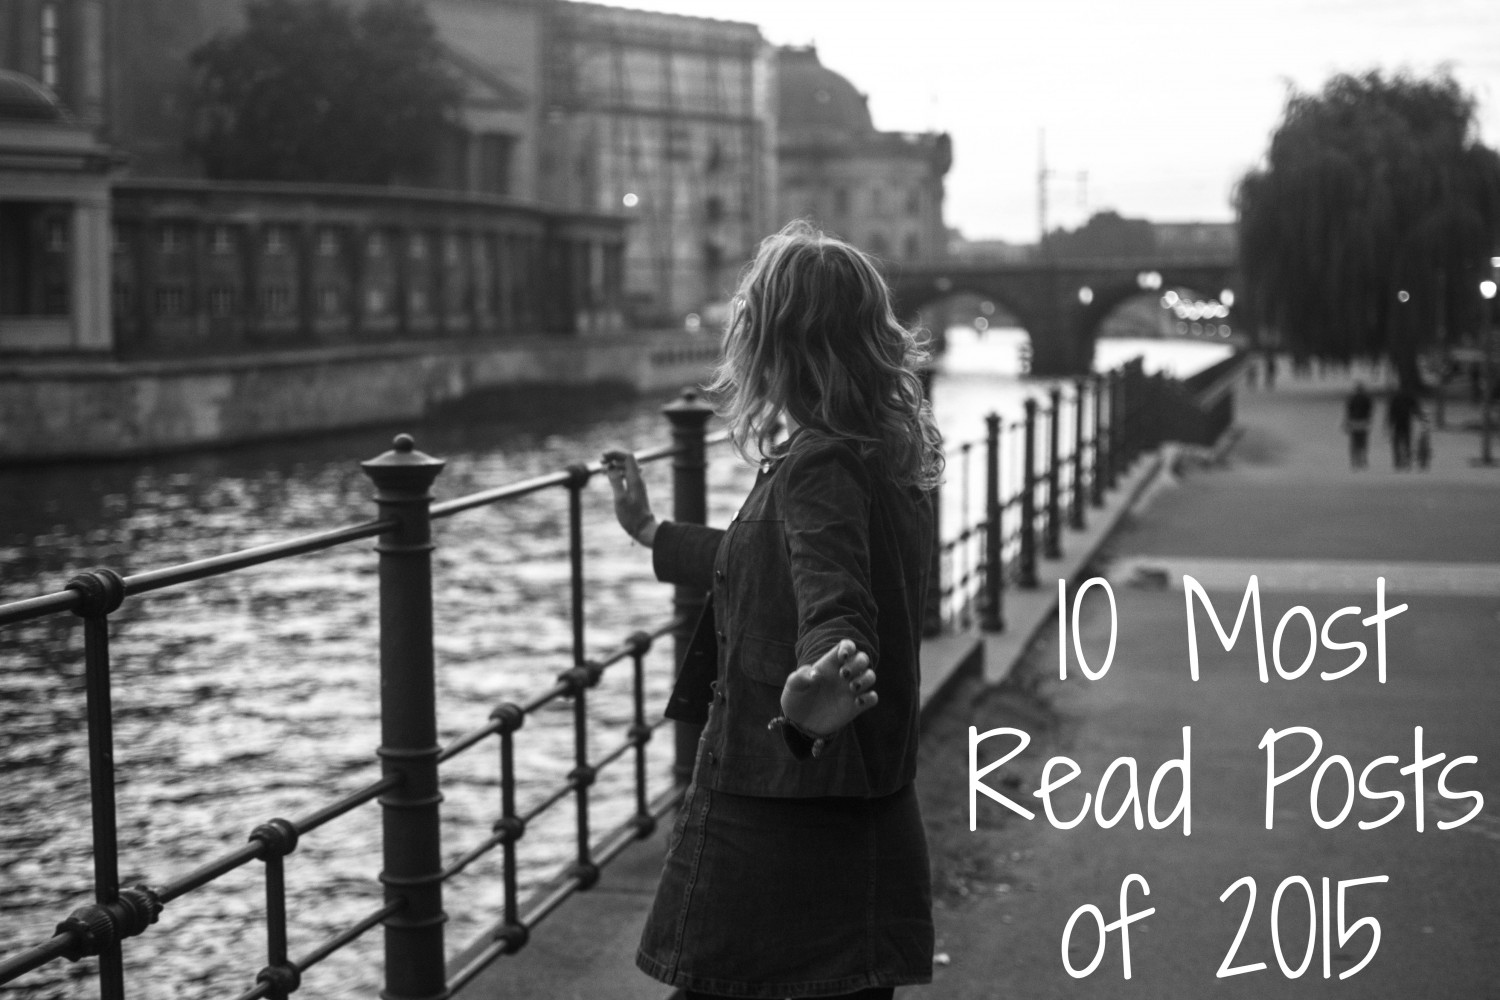 10 most read posts of 2015